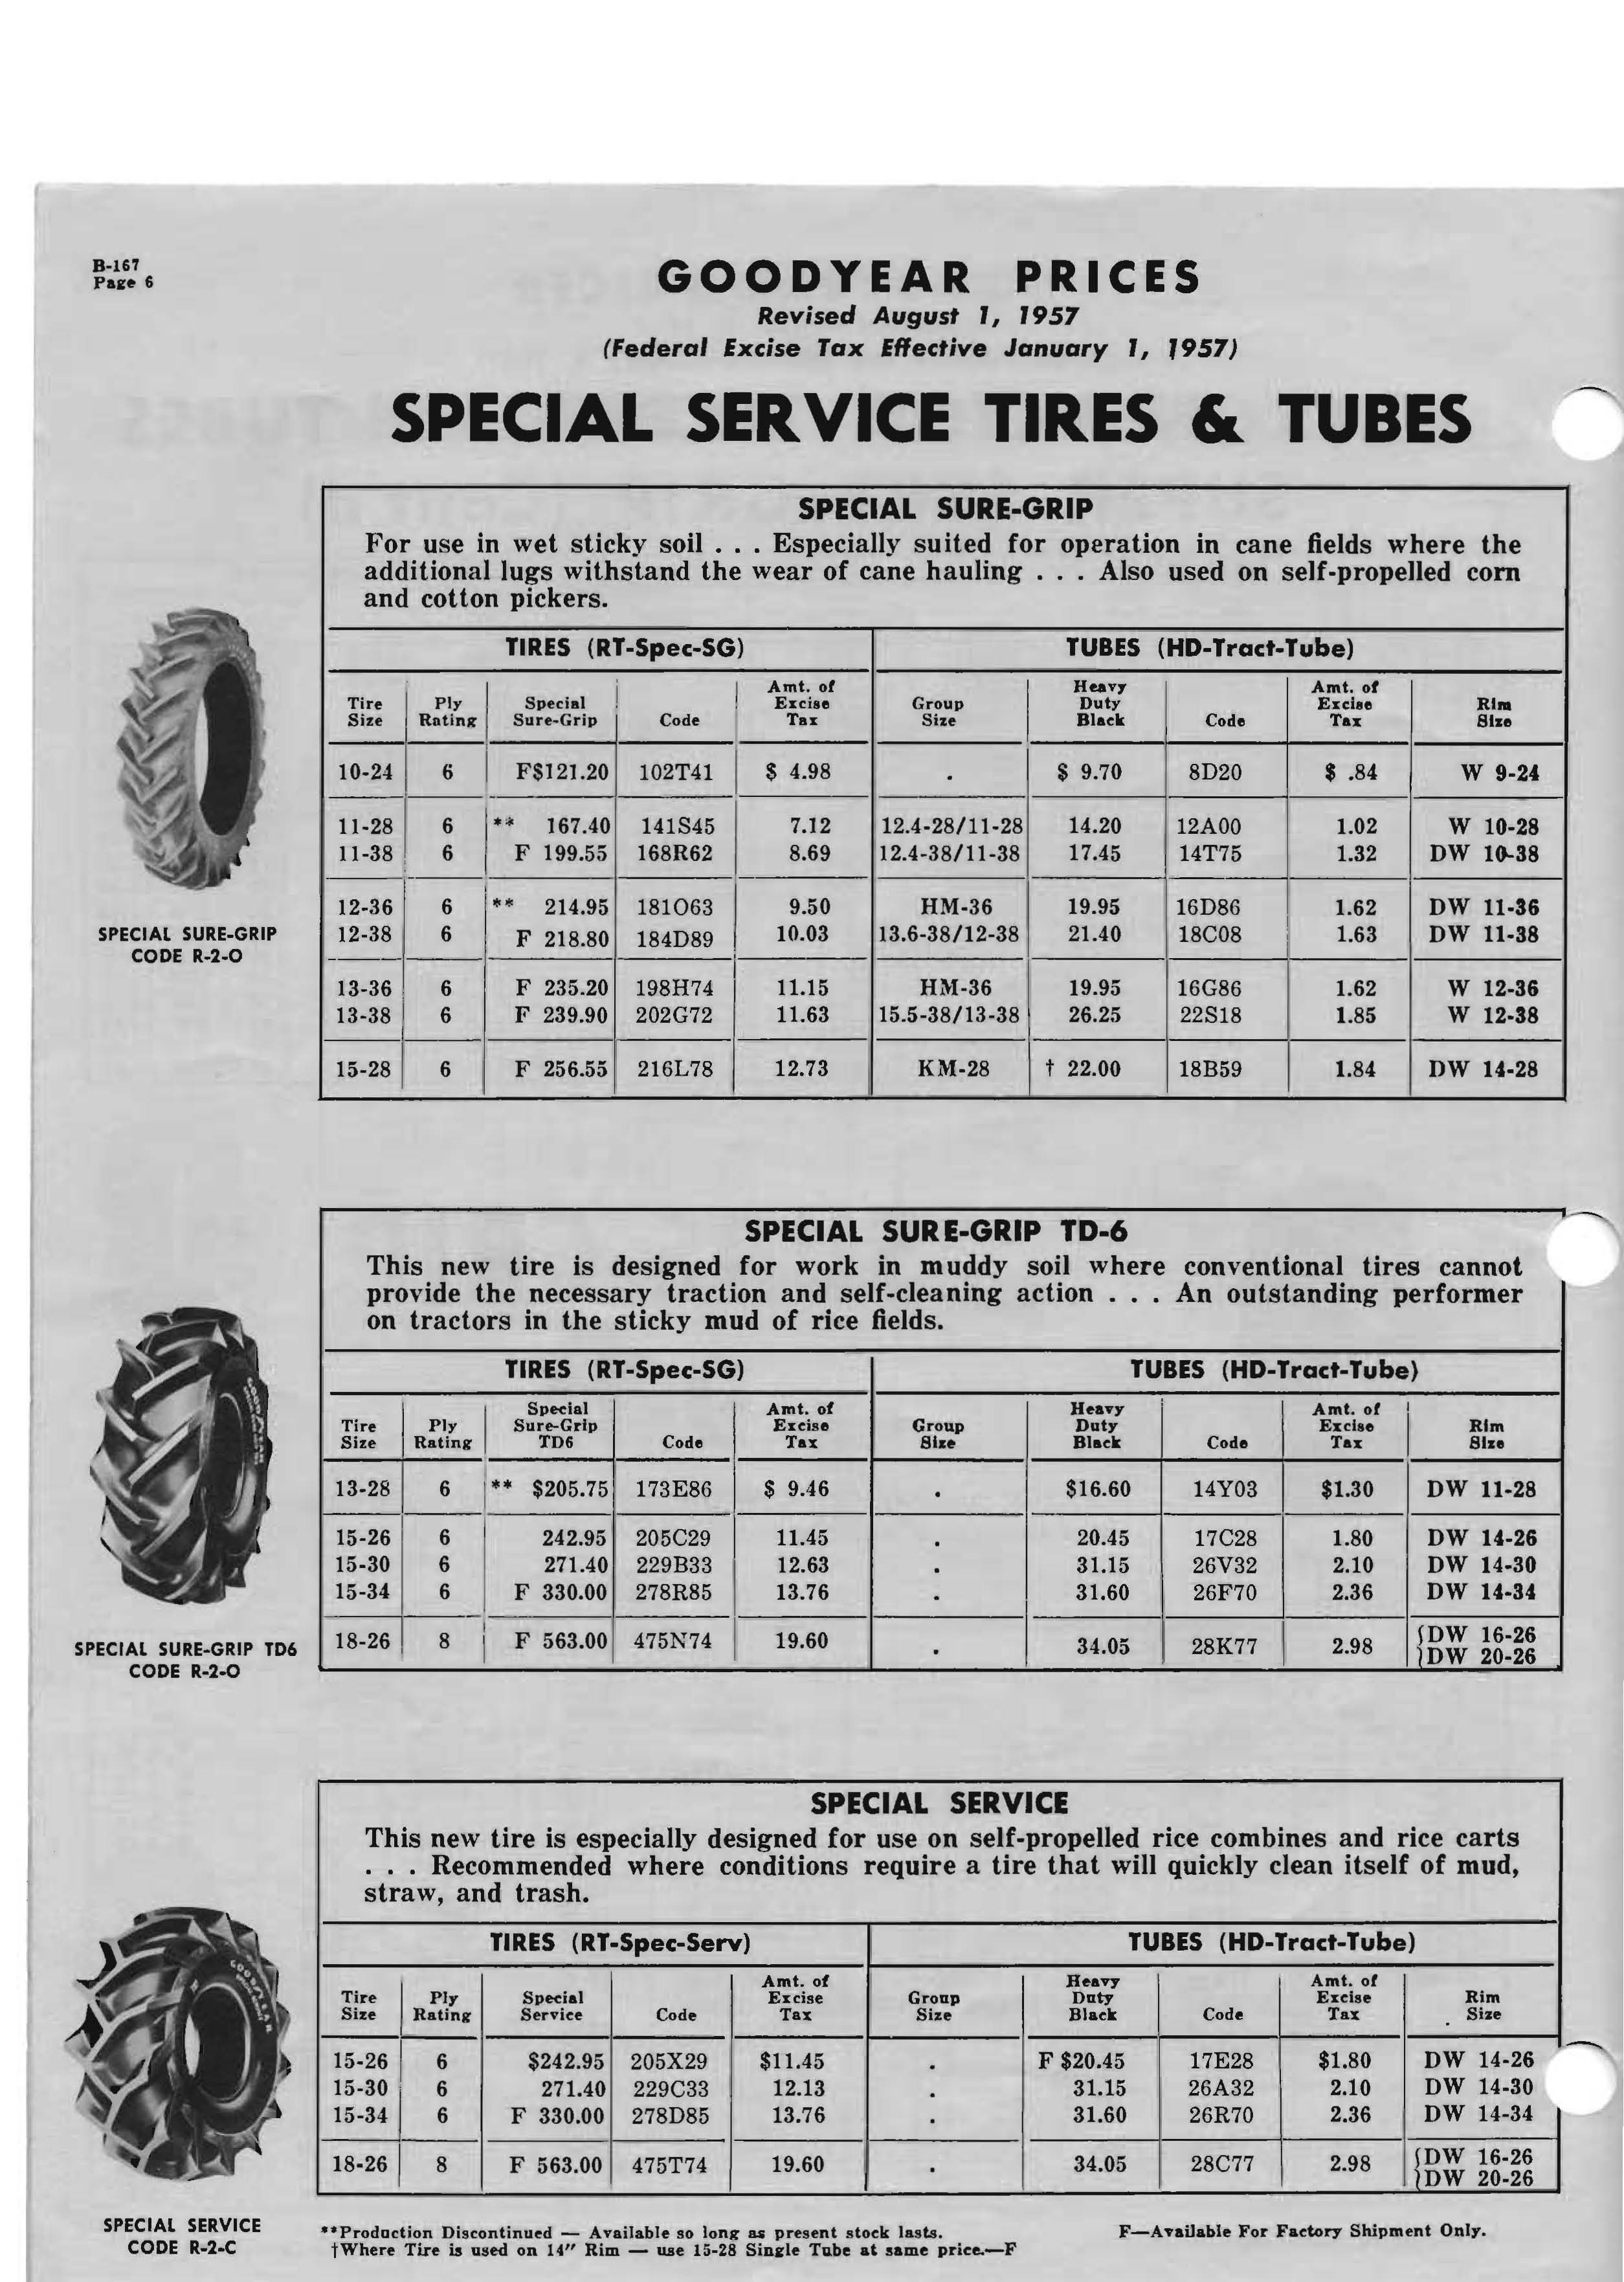 Goodyear Car >> 1957 Goodyear Farm Tire Price List / Goodyear_Farm_1957gs_Page_06.jpg